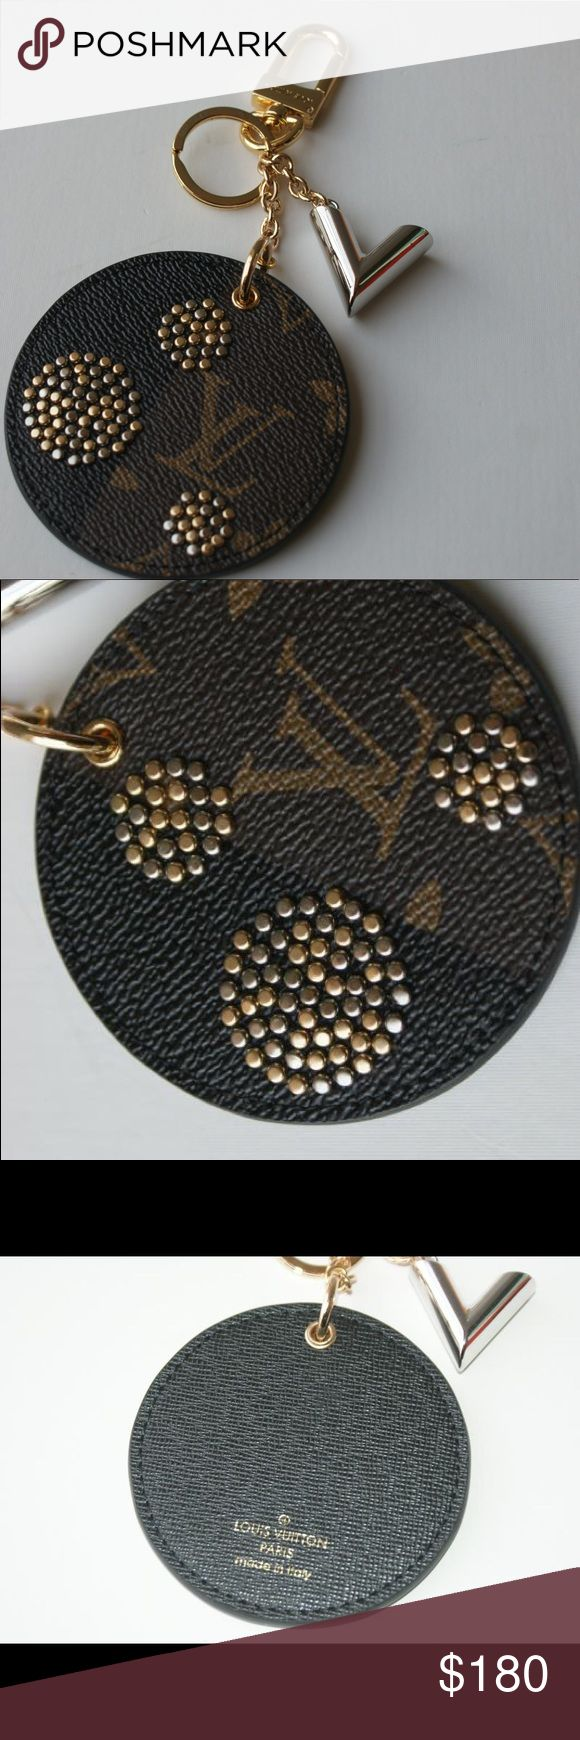 LV bag charm and key holder.LK22 Inspired by the polka dot theme of Louis Vuitton's Spring/Summer 2017 fashion show, this eye-catching key holder and bag charm combines metallic dots and a graphic V accessory with a reversed version of Monogram canvas. Louis Vuitton Other